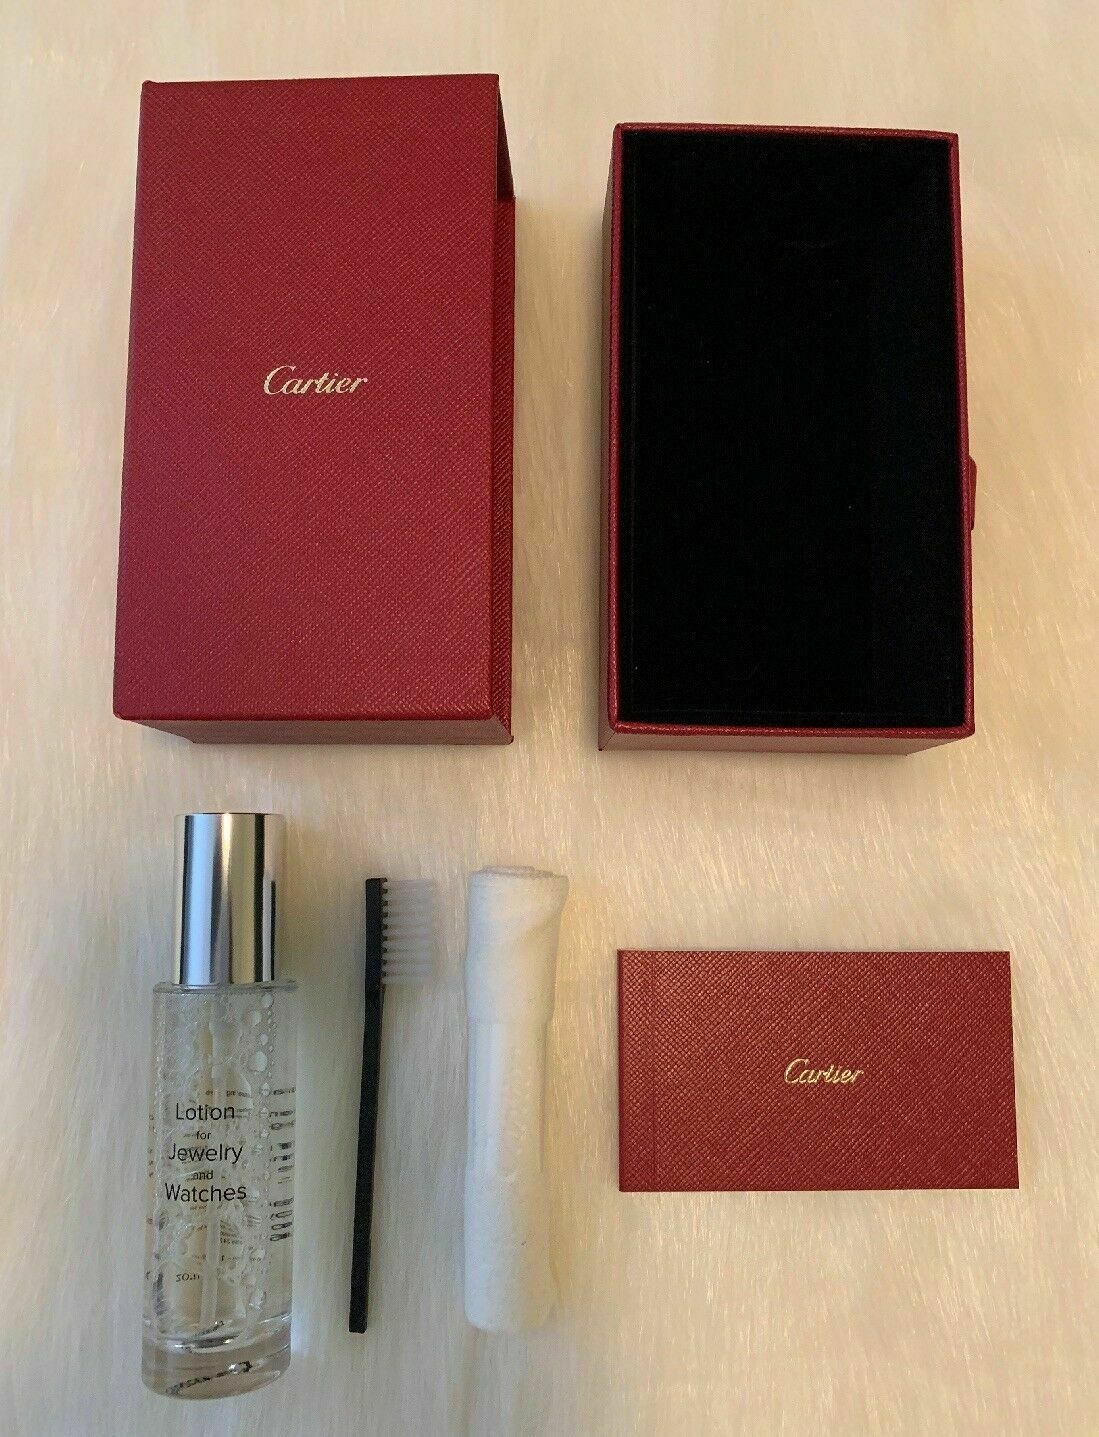 Authentic Cartier Jewelry Watch Cleaner Cleaning Kit